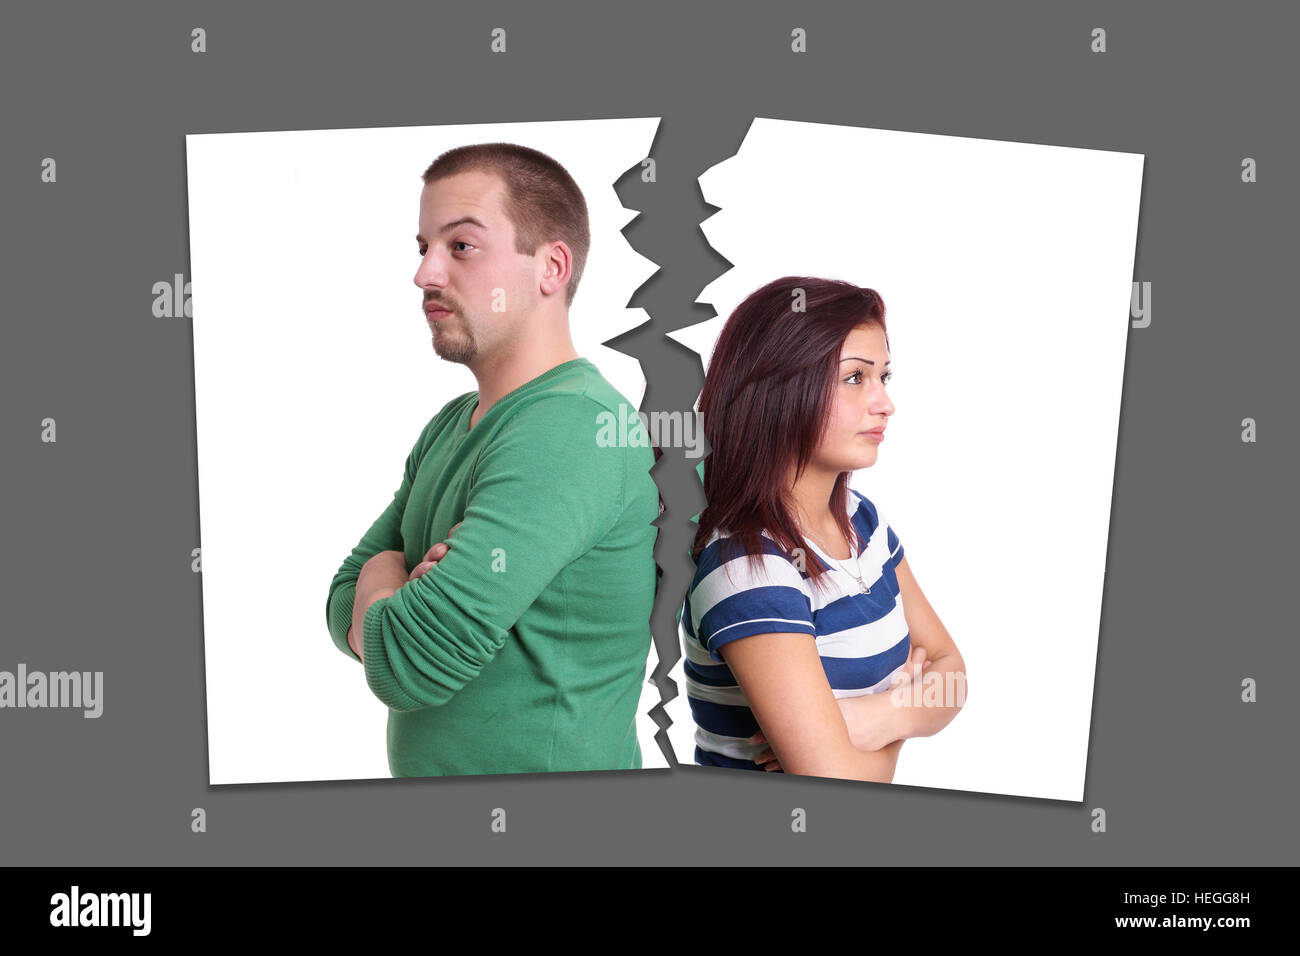 separation or divorce concept - Stock Image